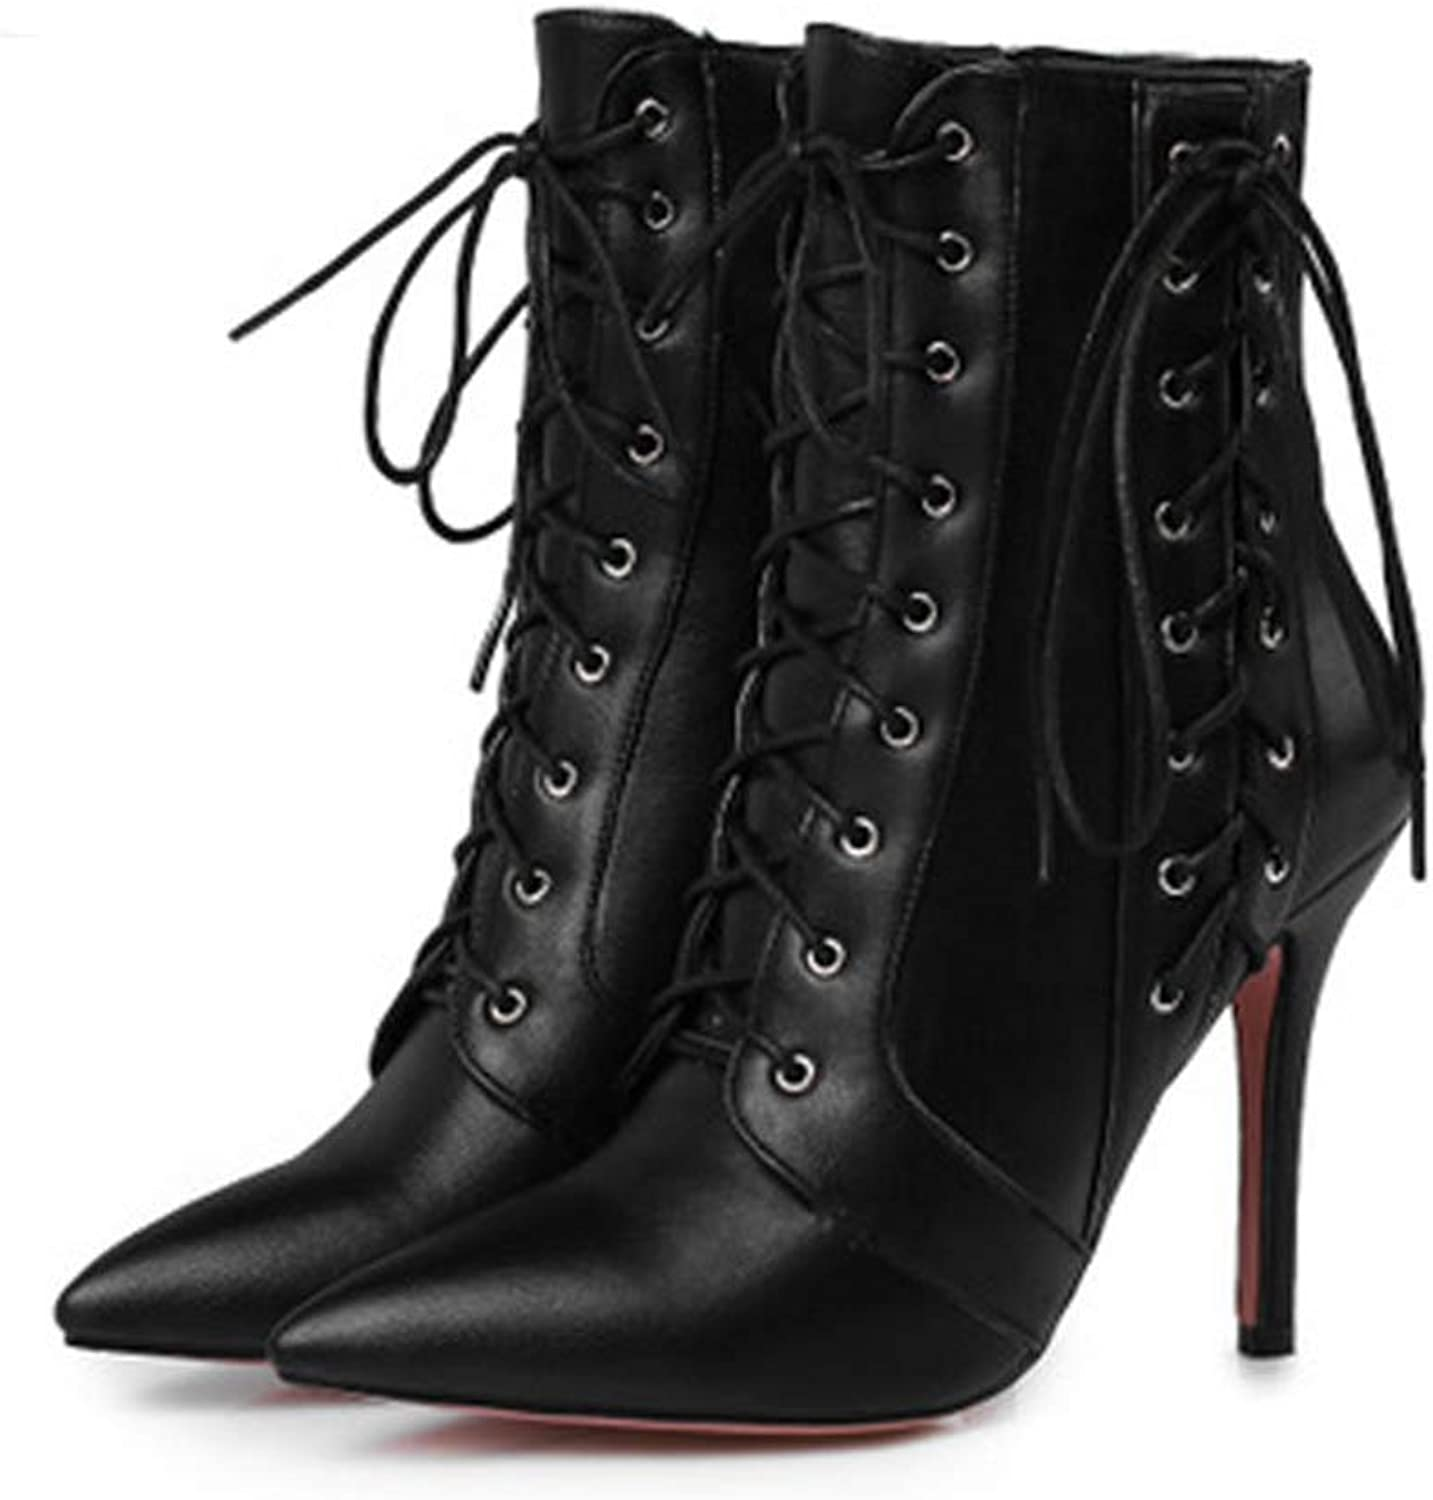 SENERY Winter Boots Women Lace-Up Zipper Leather Cross-Tied Decoration Pointed Toe High Heel Ankle Boots